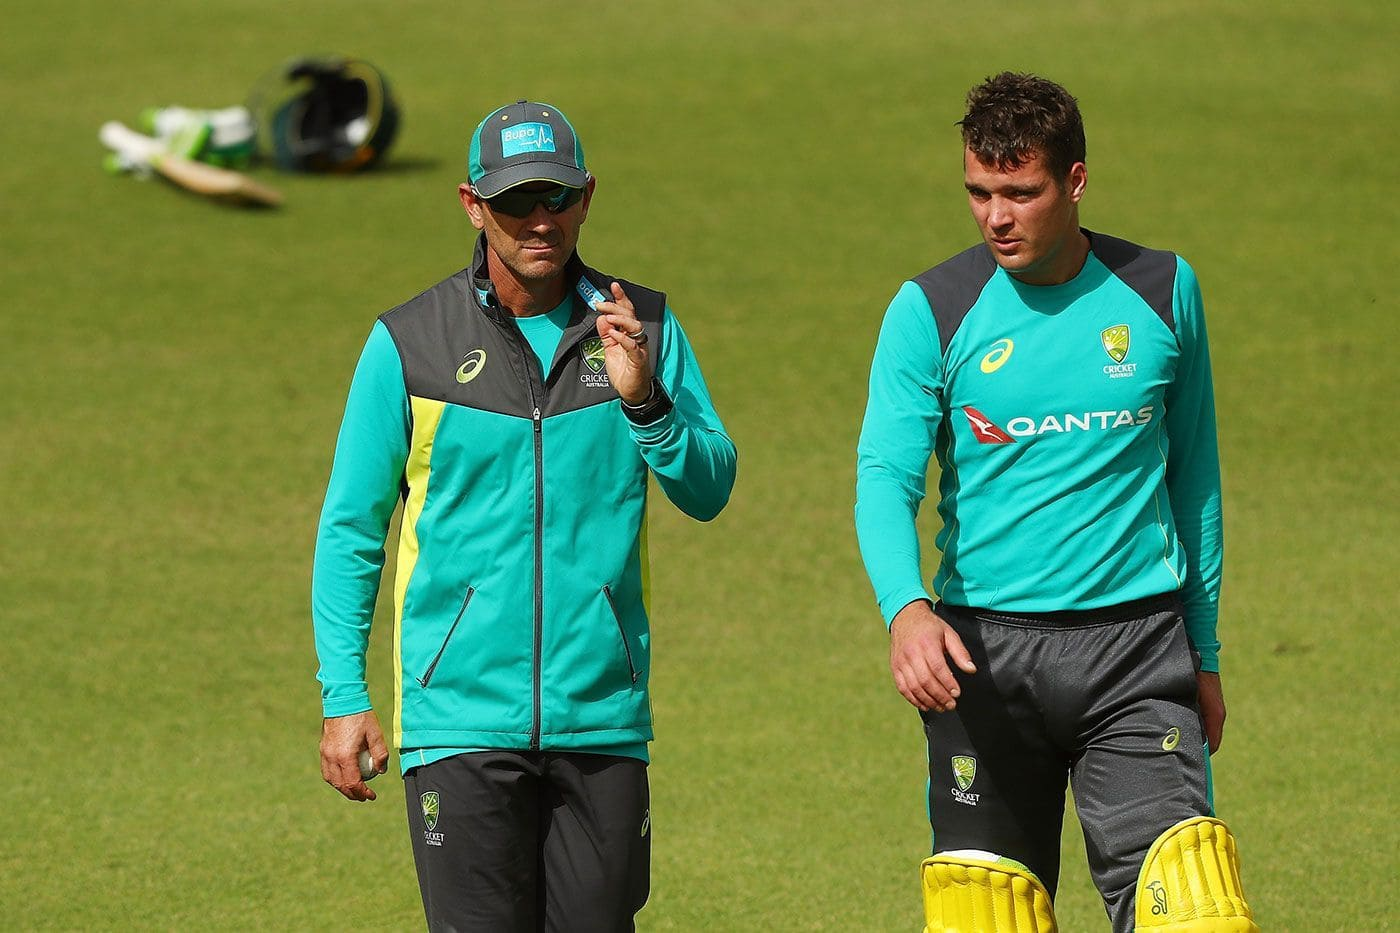 PCB: Cricket Australia's Refusal Forced Pakistan to Play ODIs in UAE